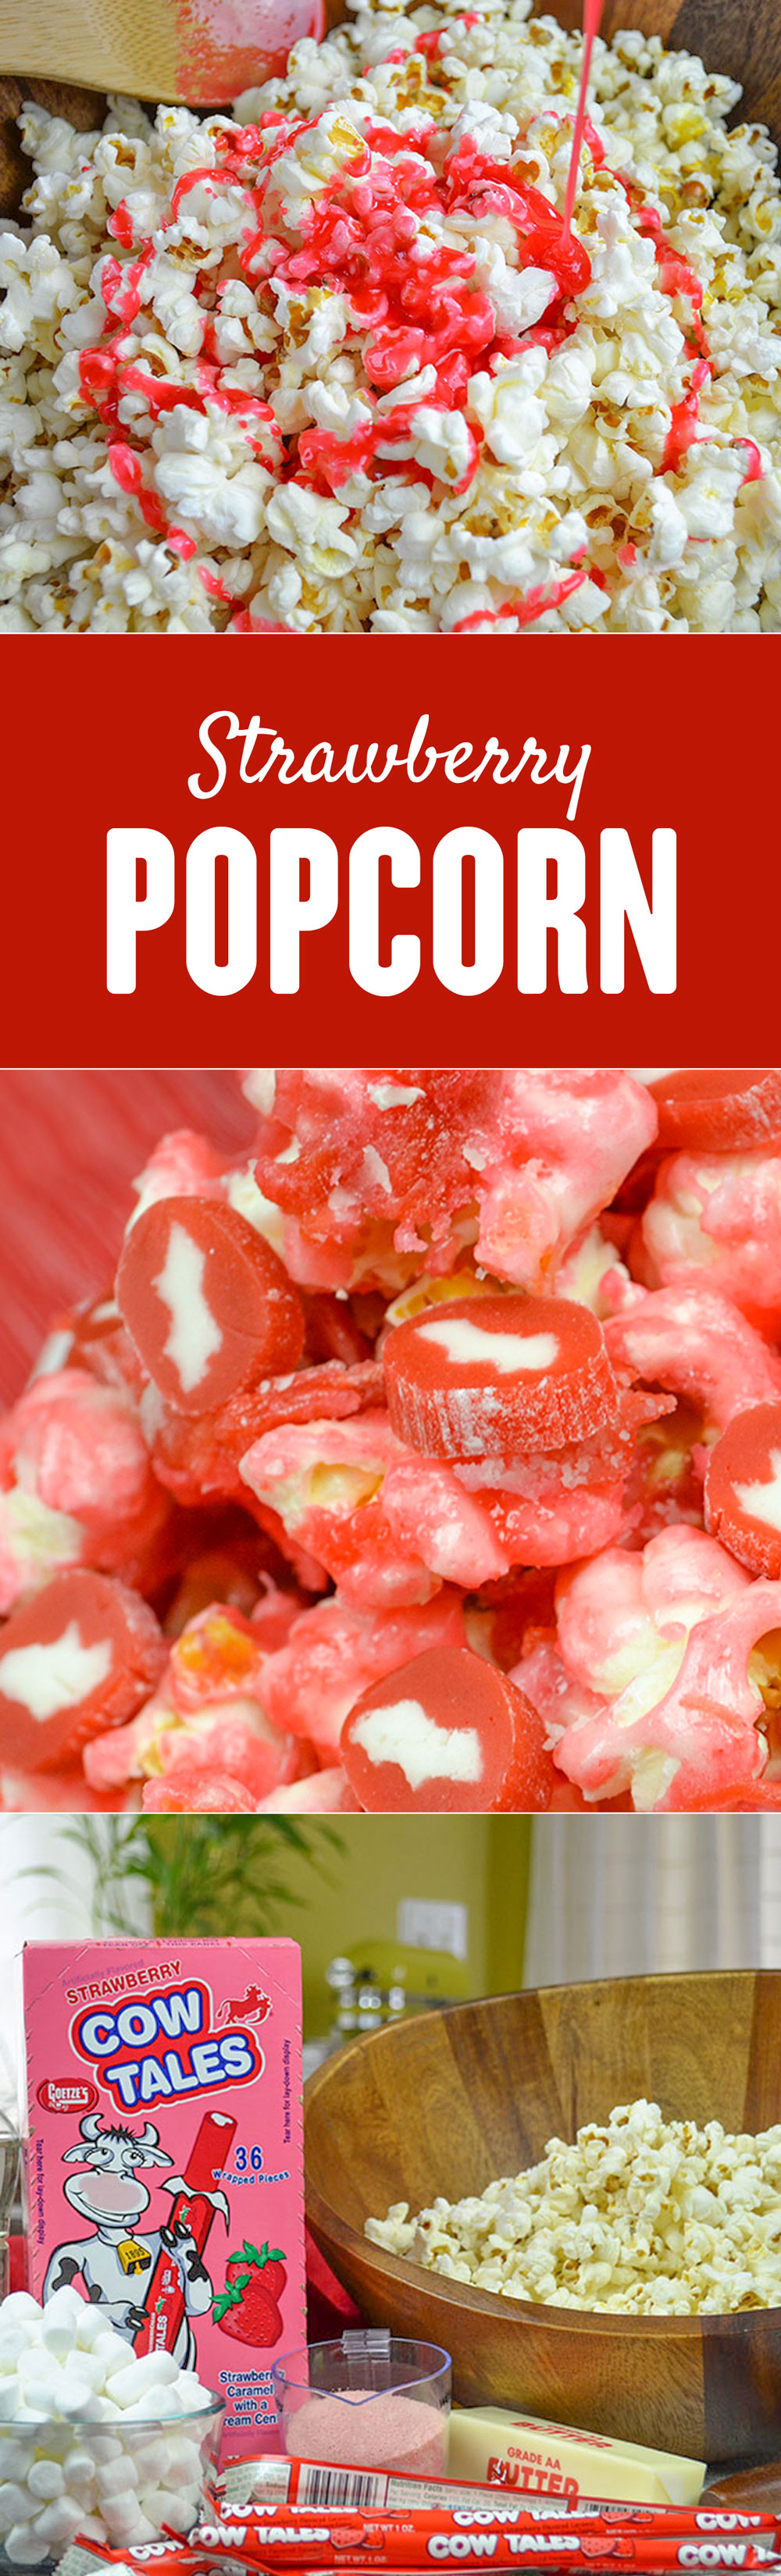 Recipe: Strawberry Caramel Candied Popcorn